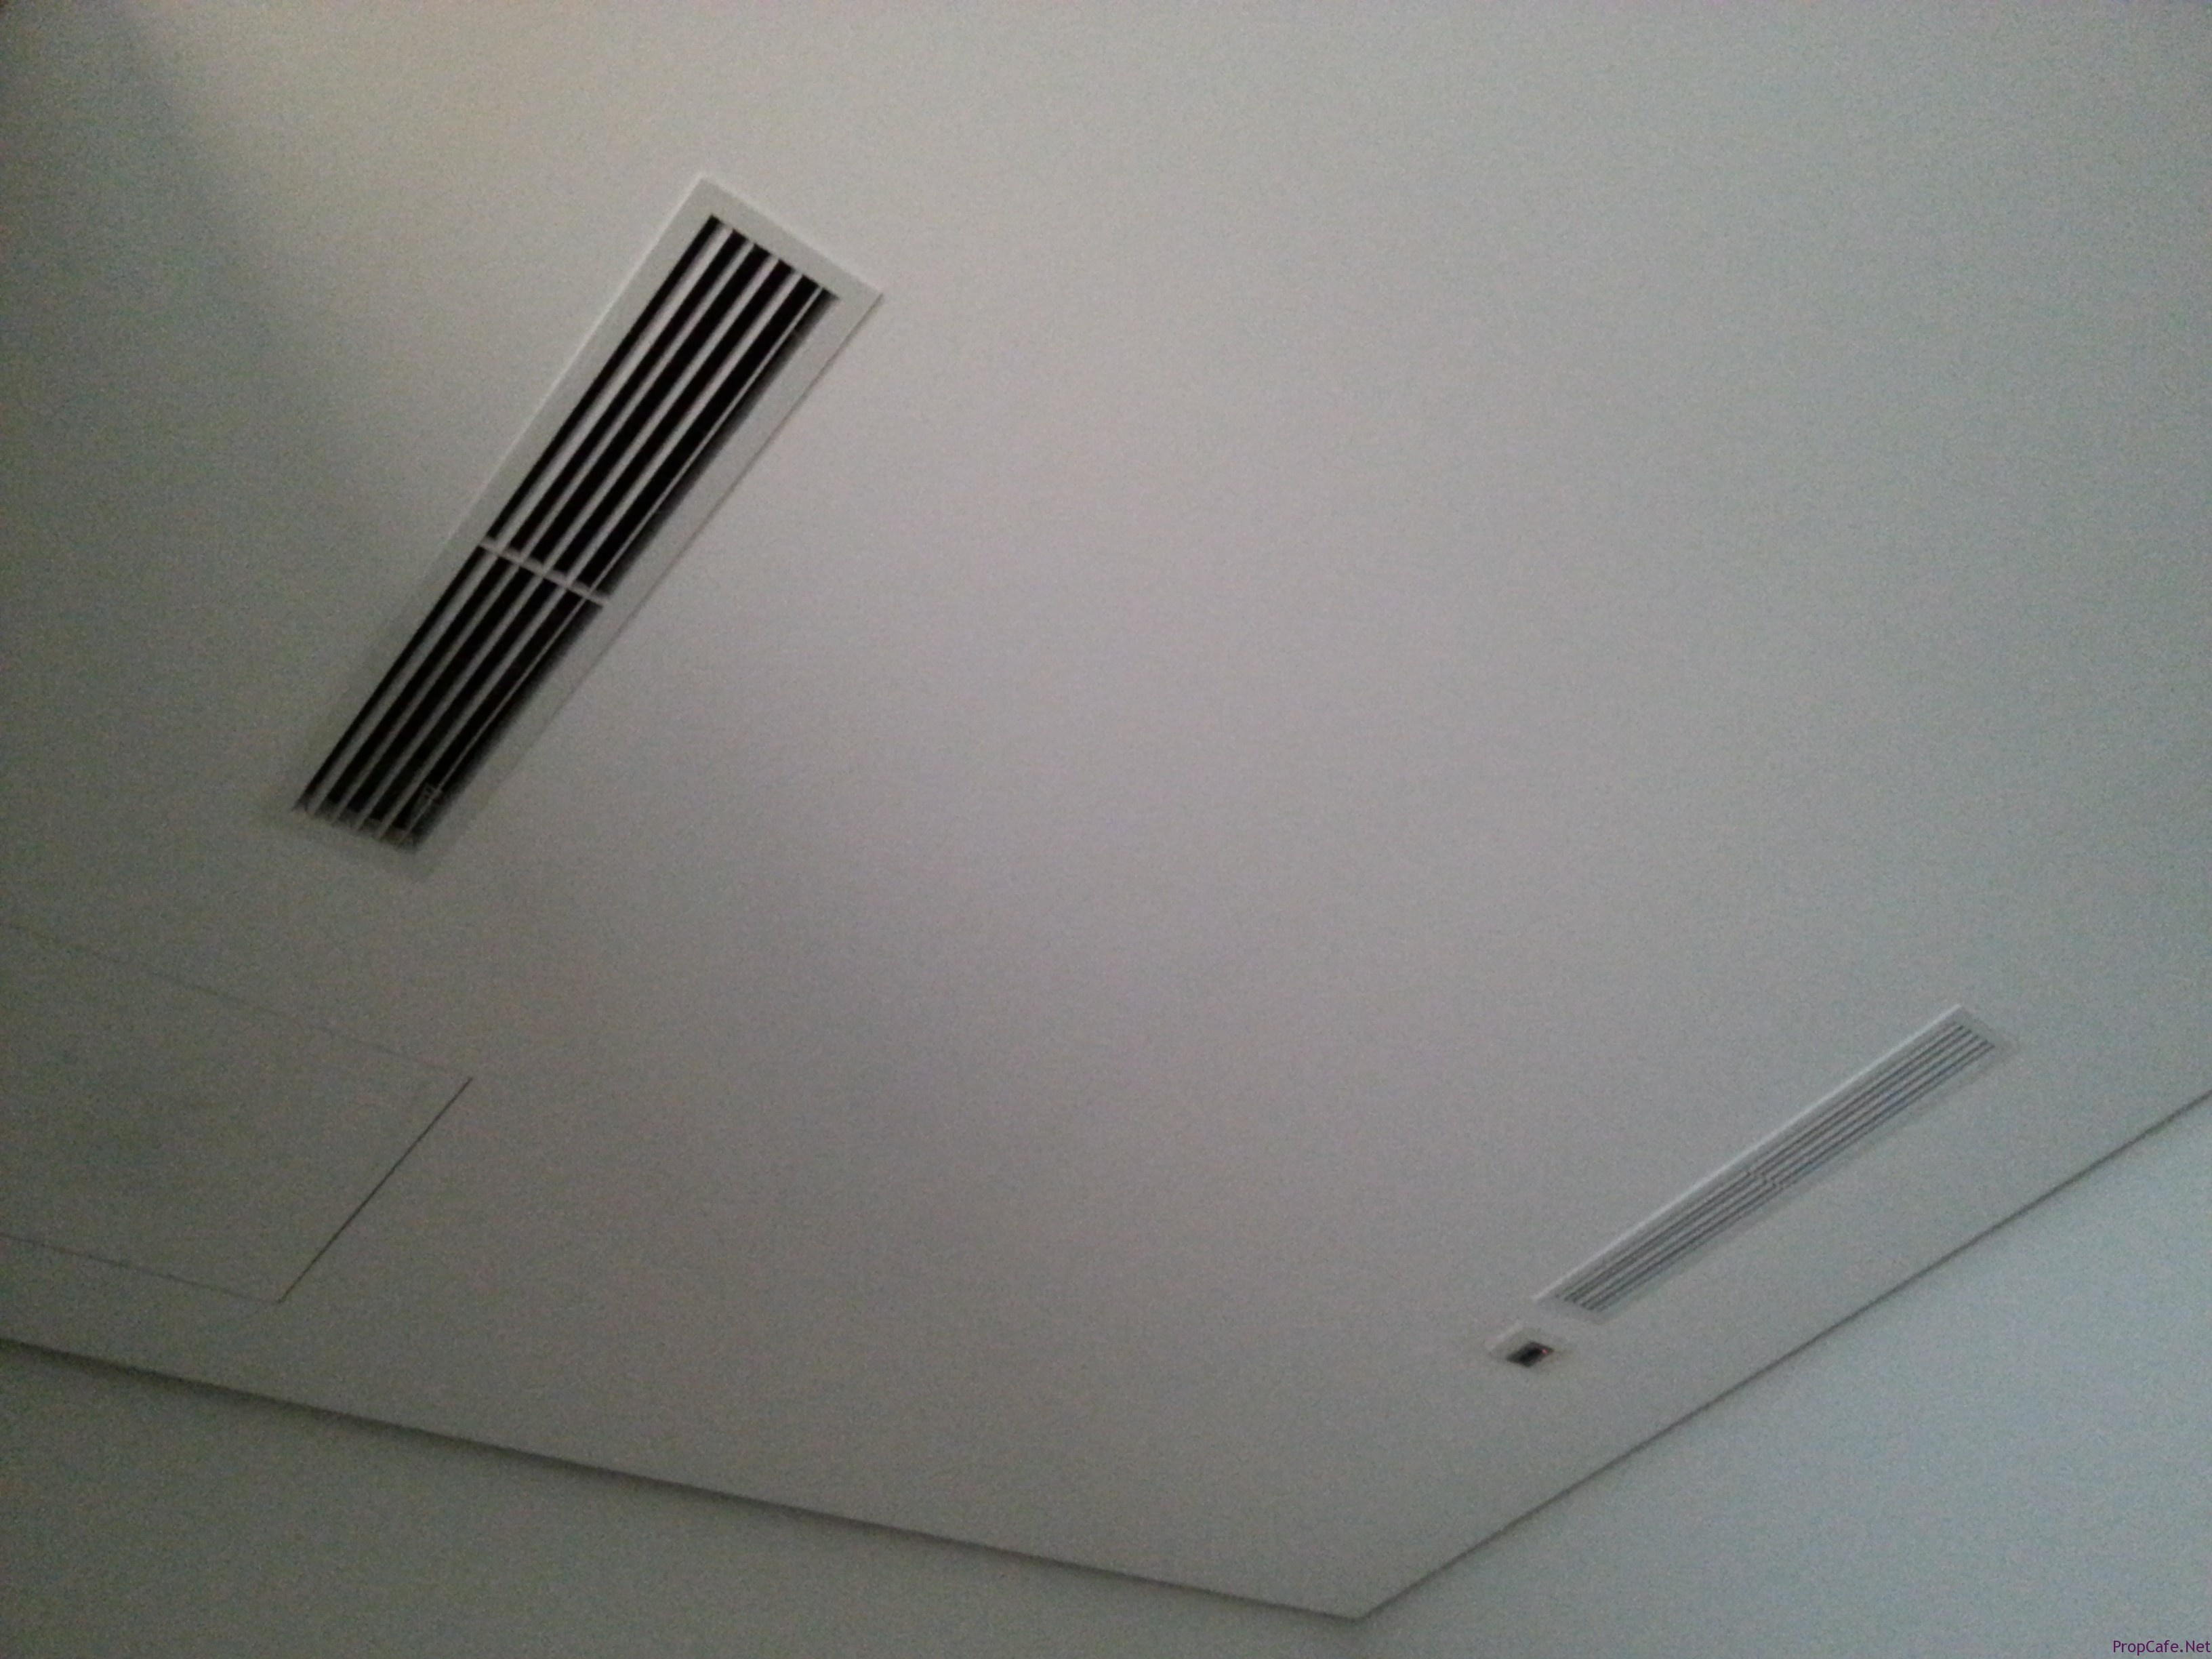 the whole unit is air conditioning by vrv air con and plastered  #3B3C34